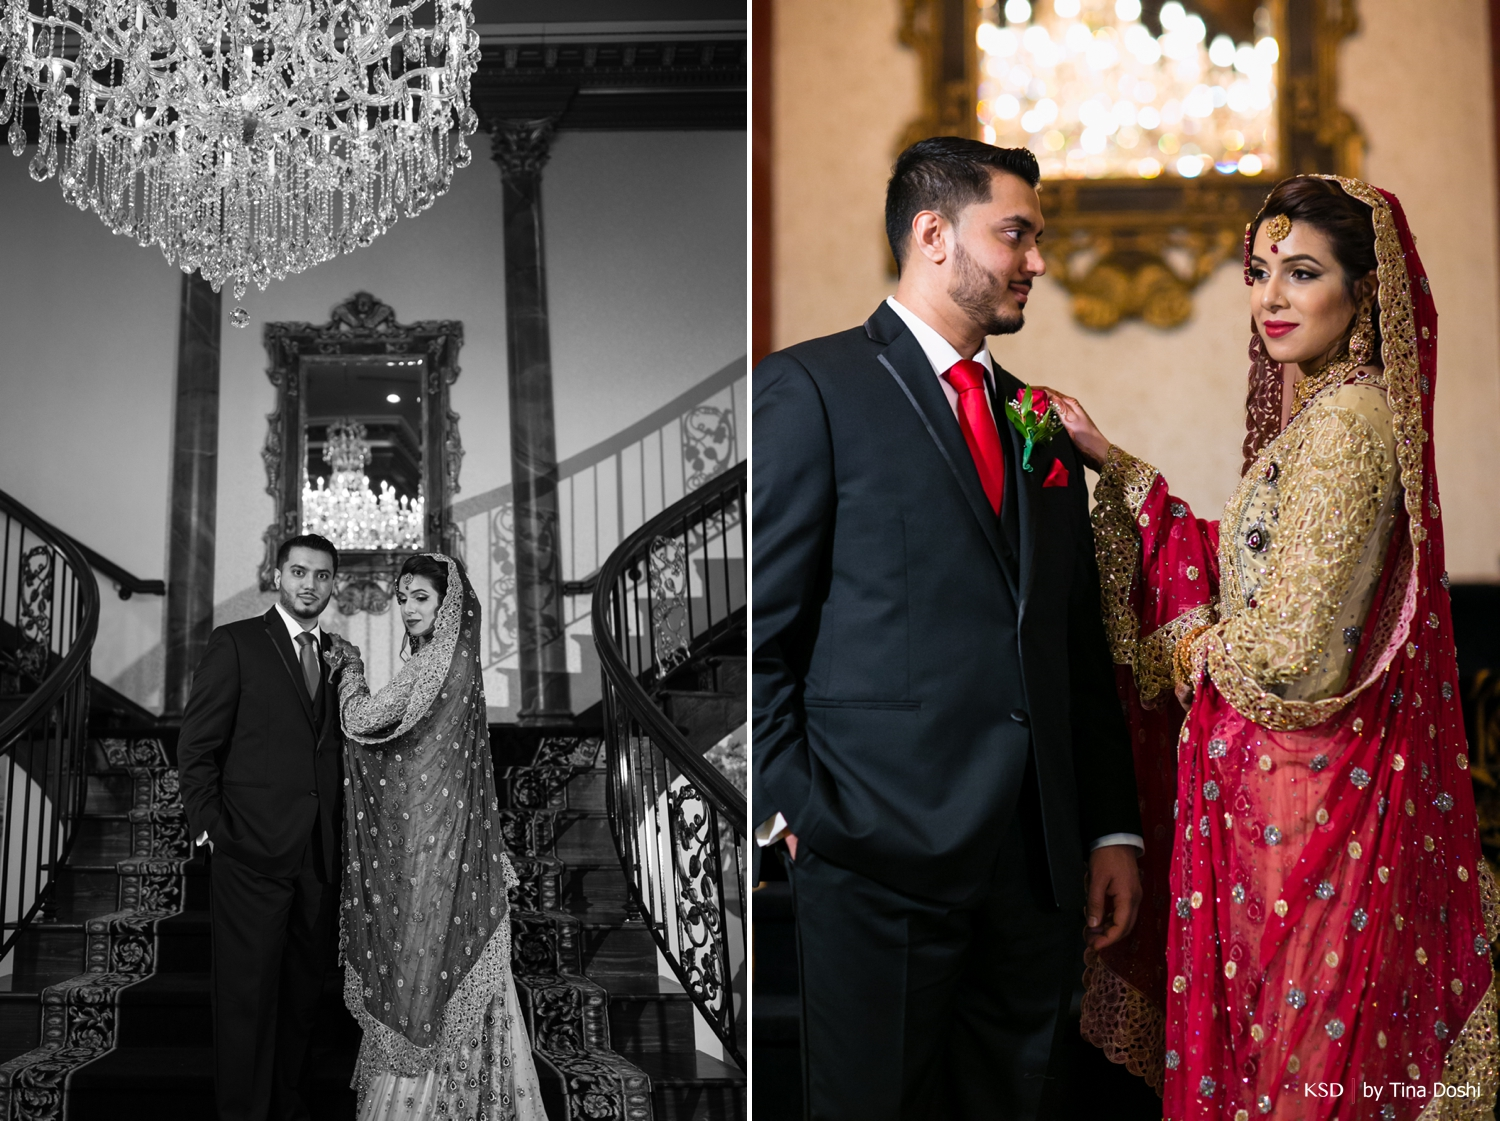 nj_south_asian_wedding_0076